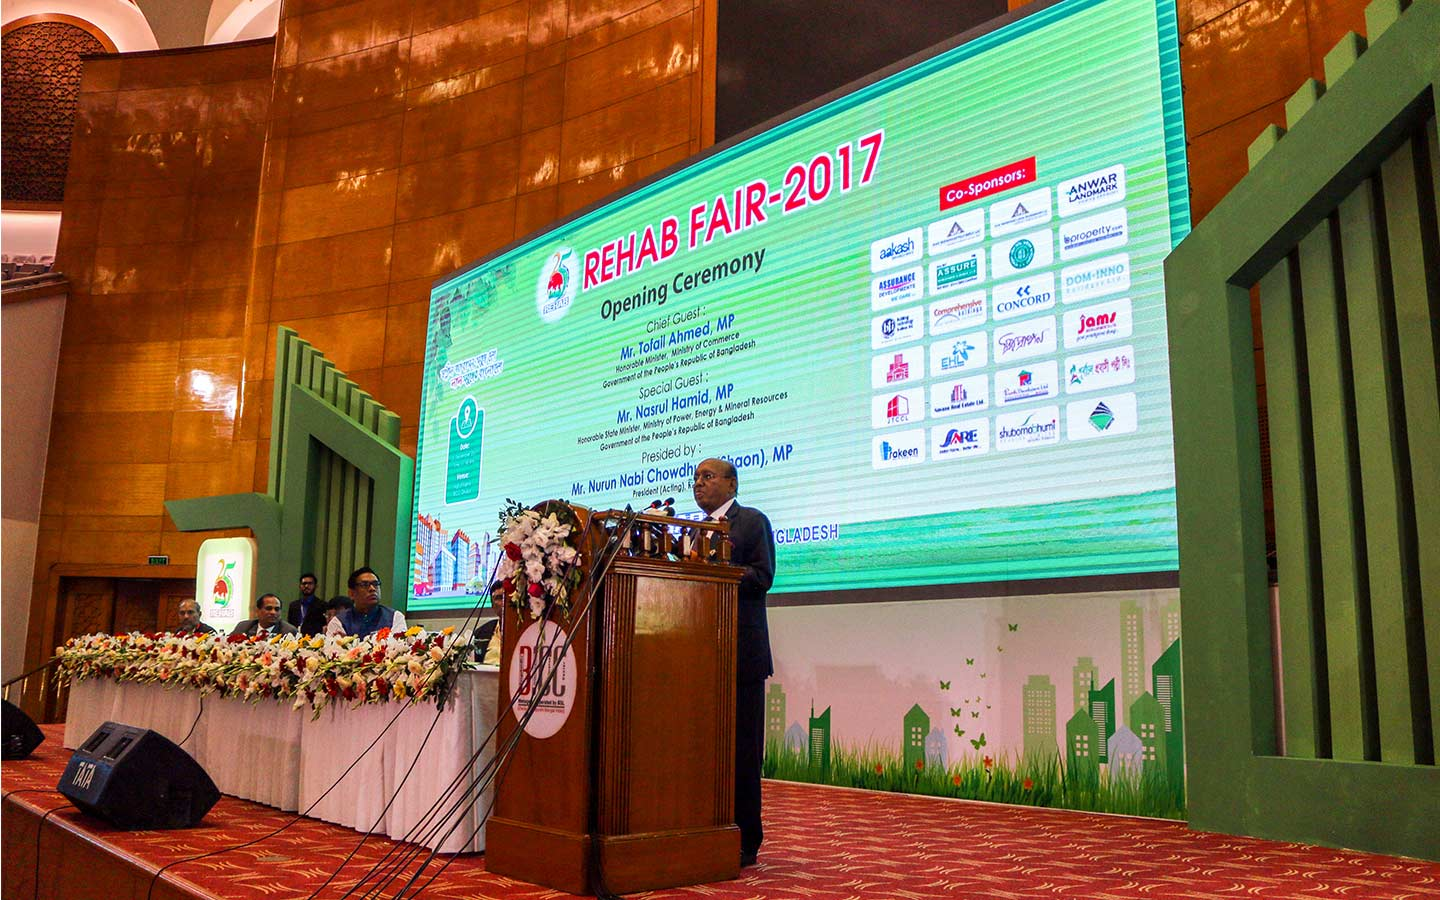 Honorable Minister giving speech on the Ceremony in REHAB FAIR 2017